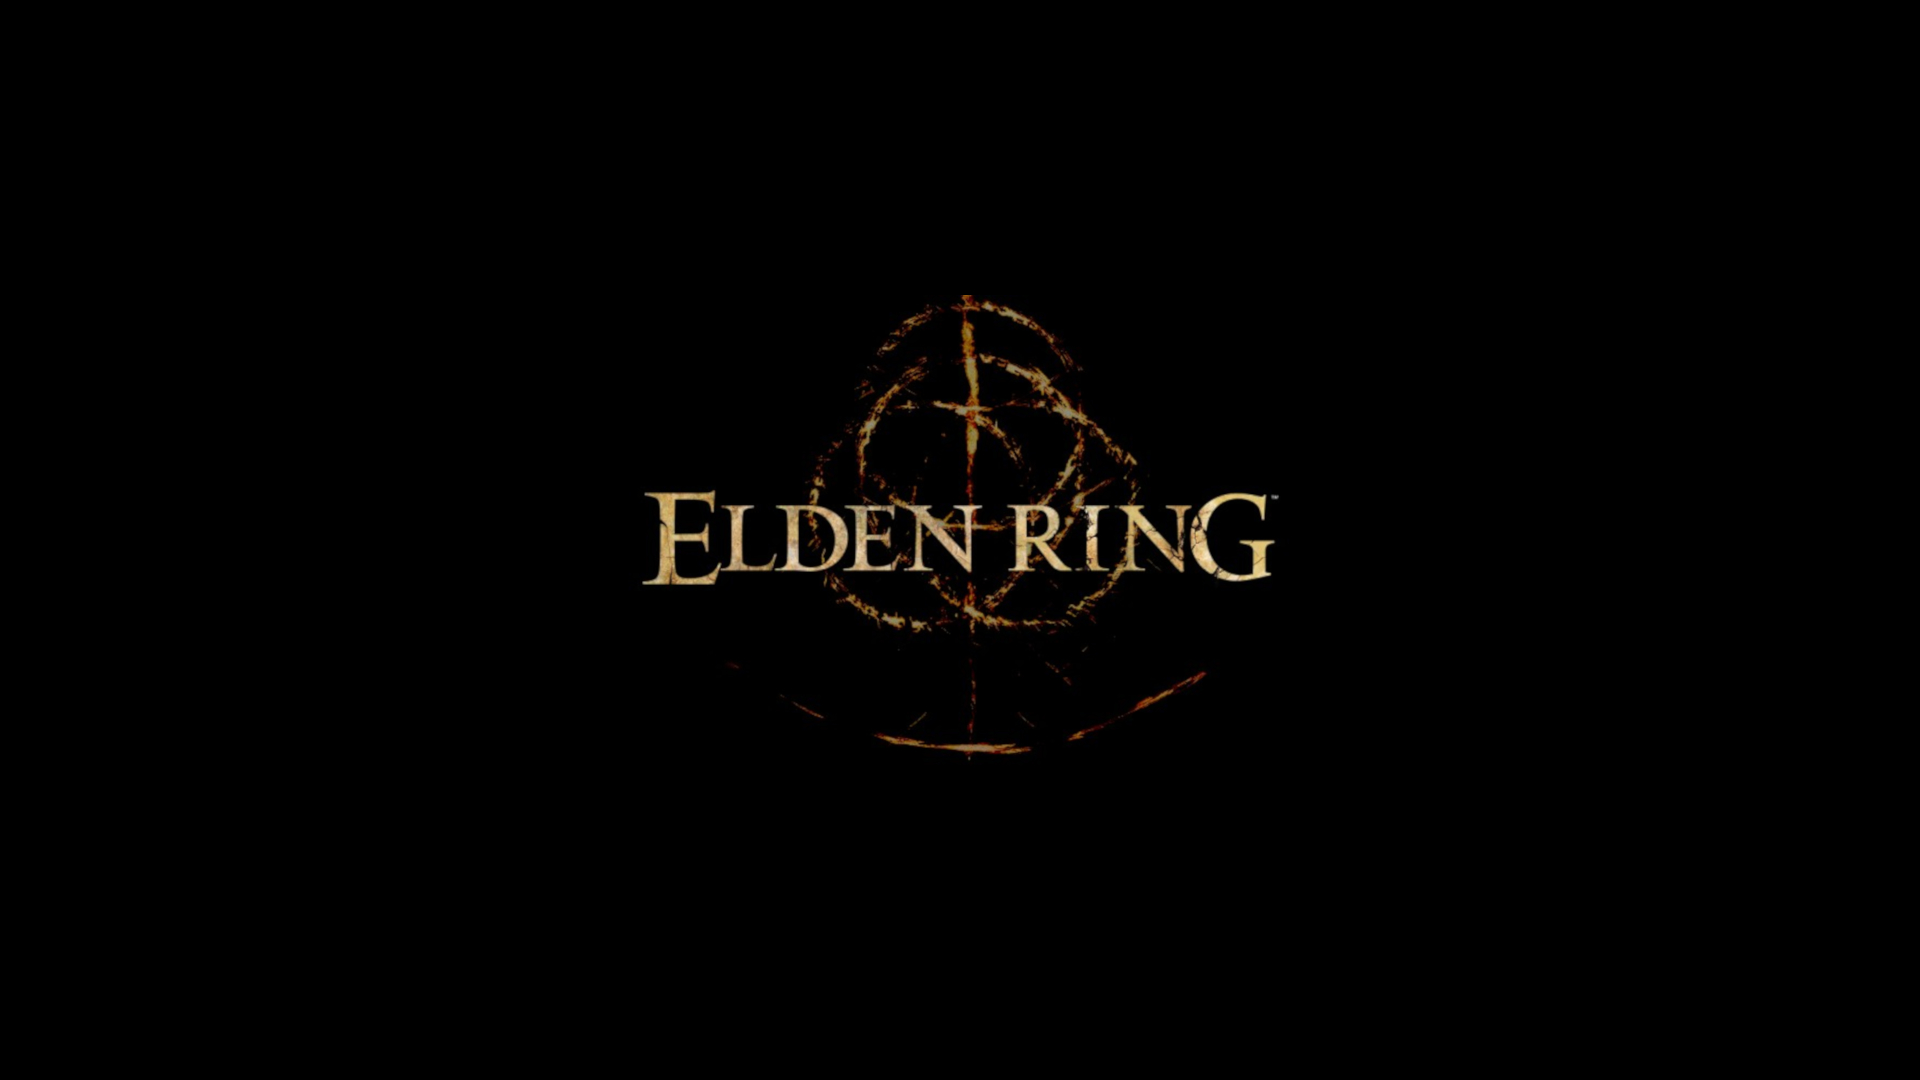 elden ring logo wallpaper 69413